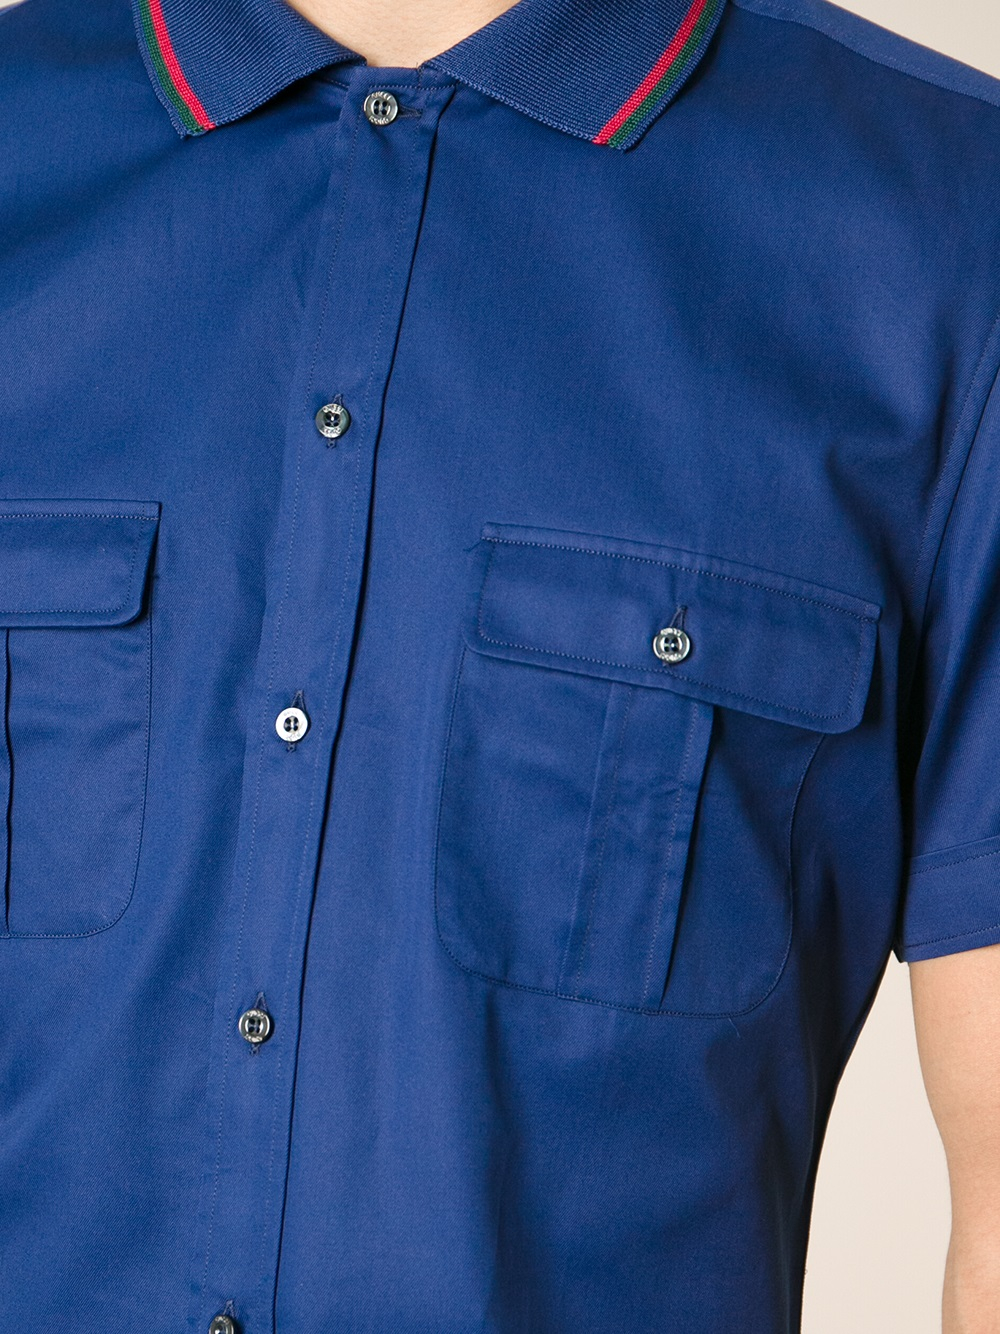 Gucci double pocket polo shirt in blue for men lyst for Two pocket polo shirt